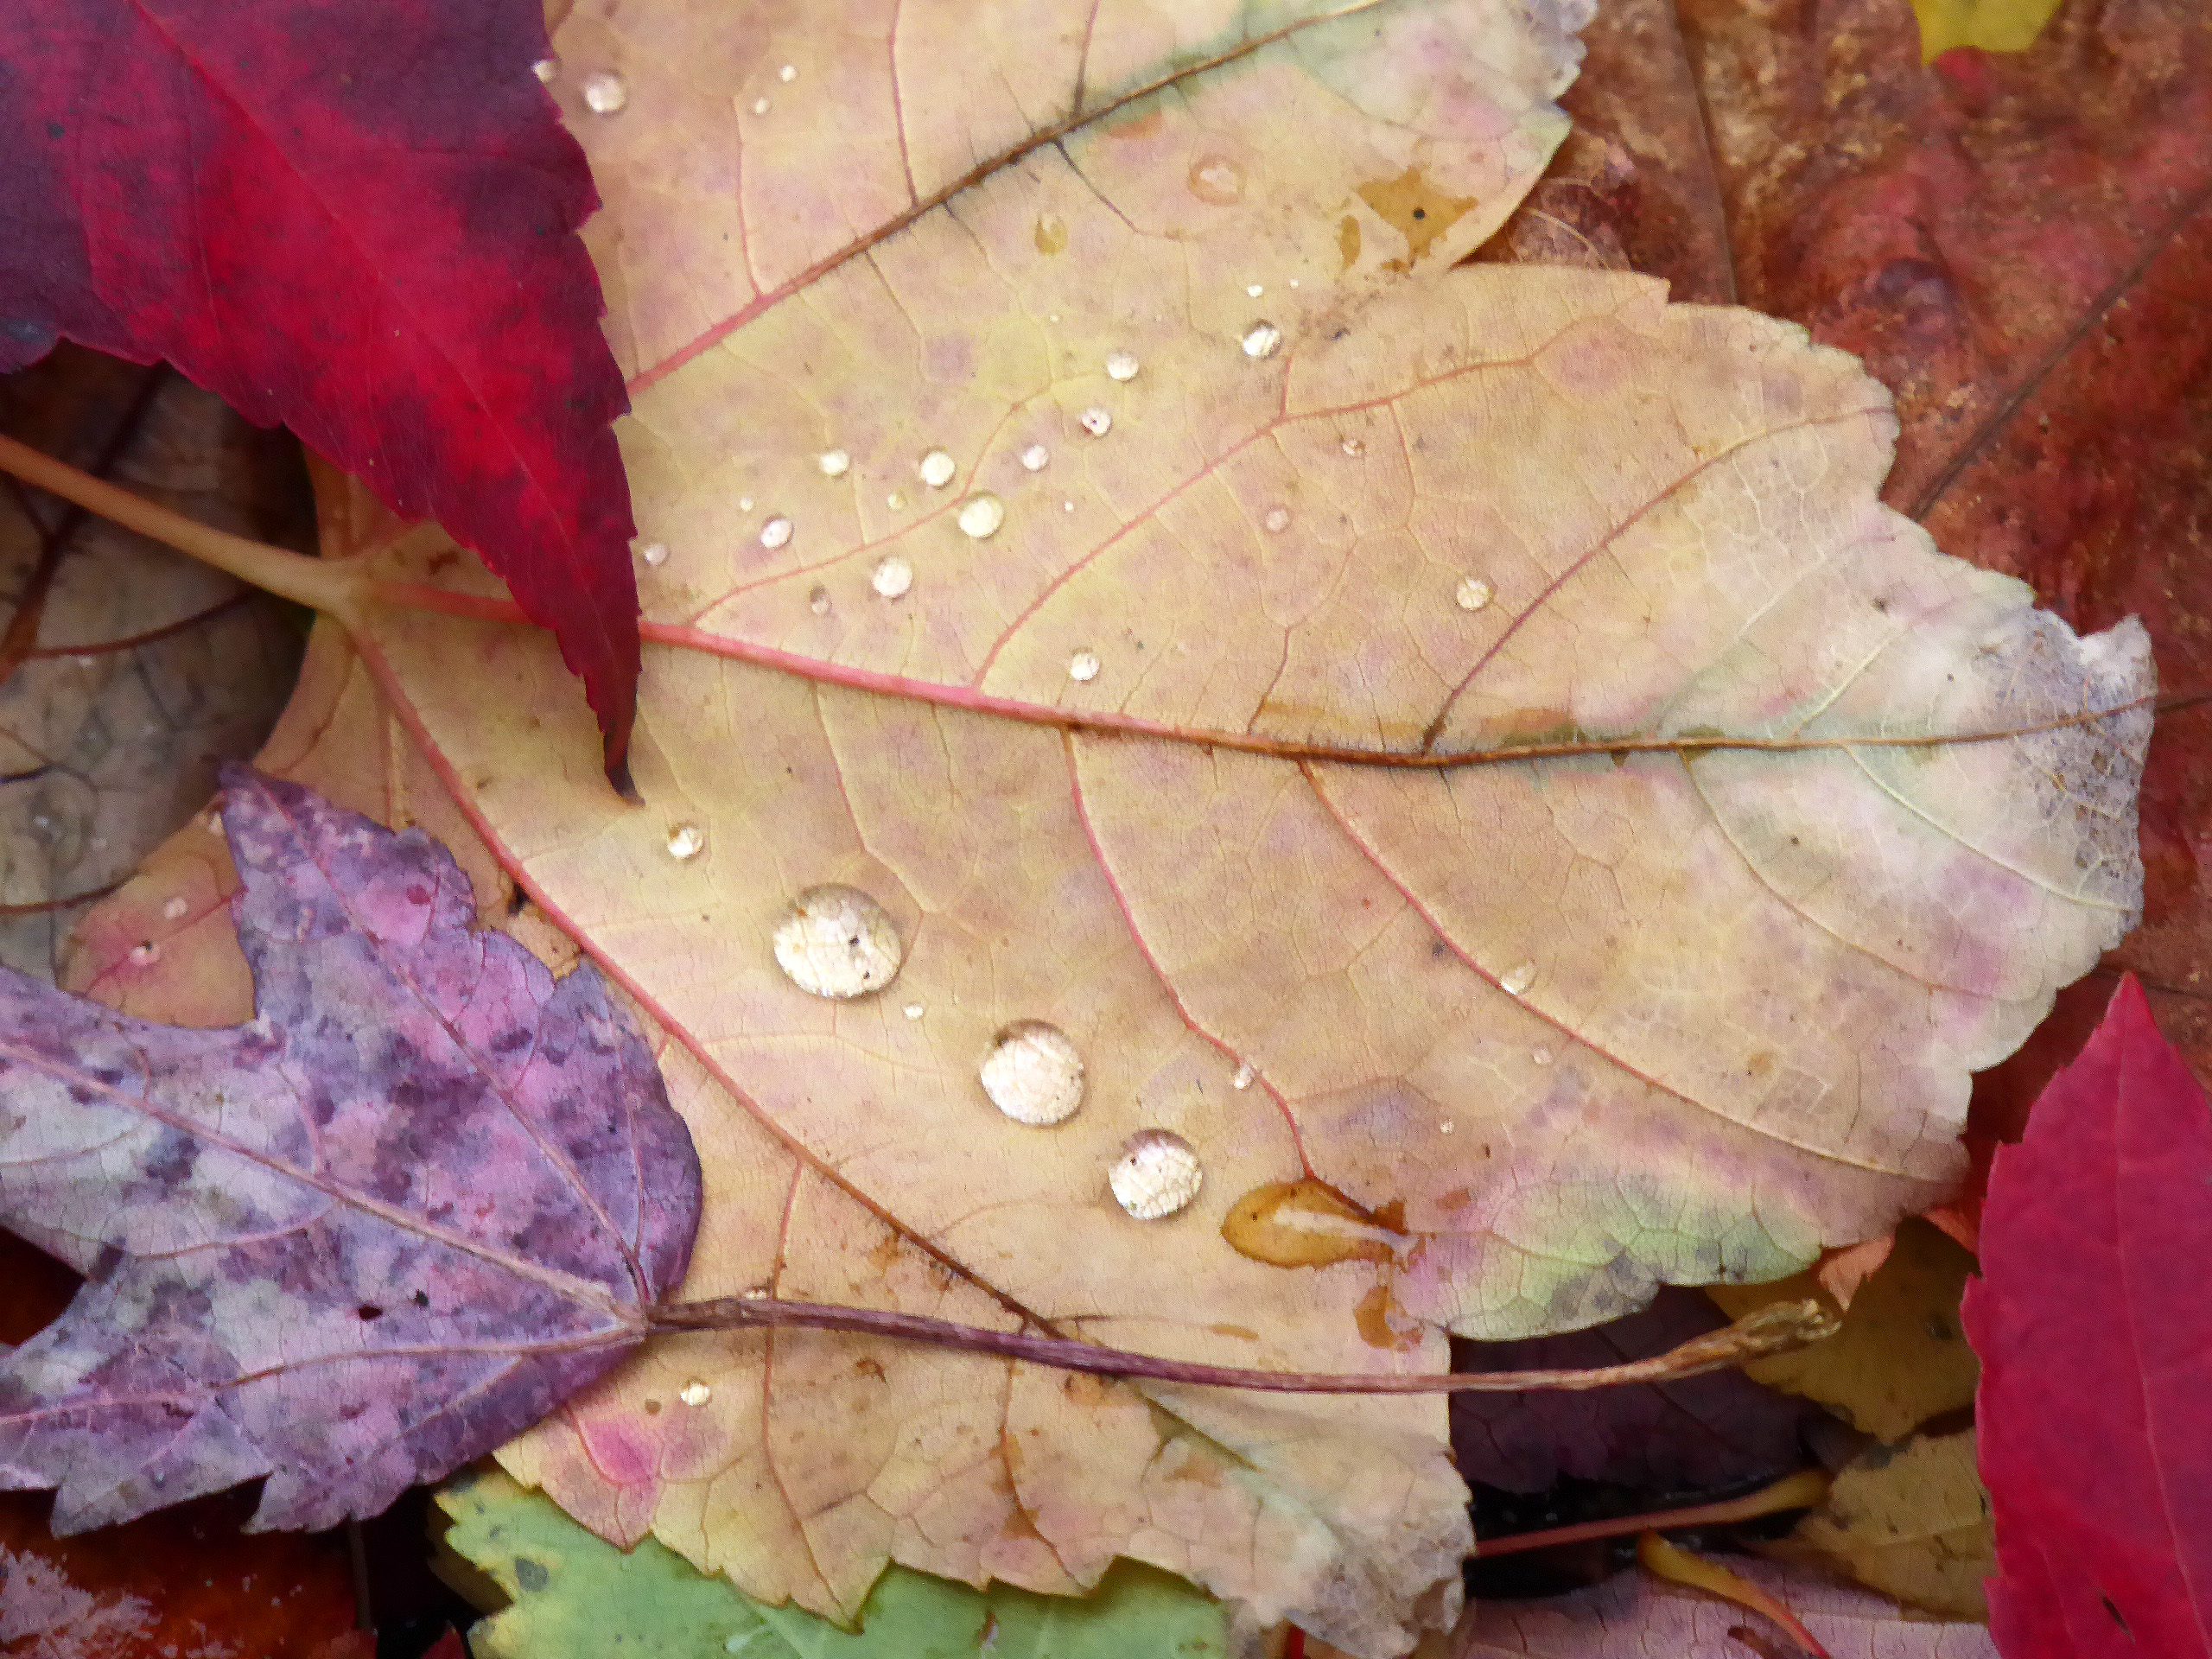 Water droplets on autumn leaves